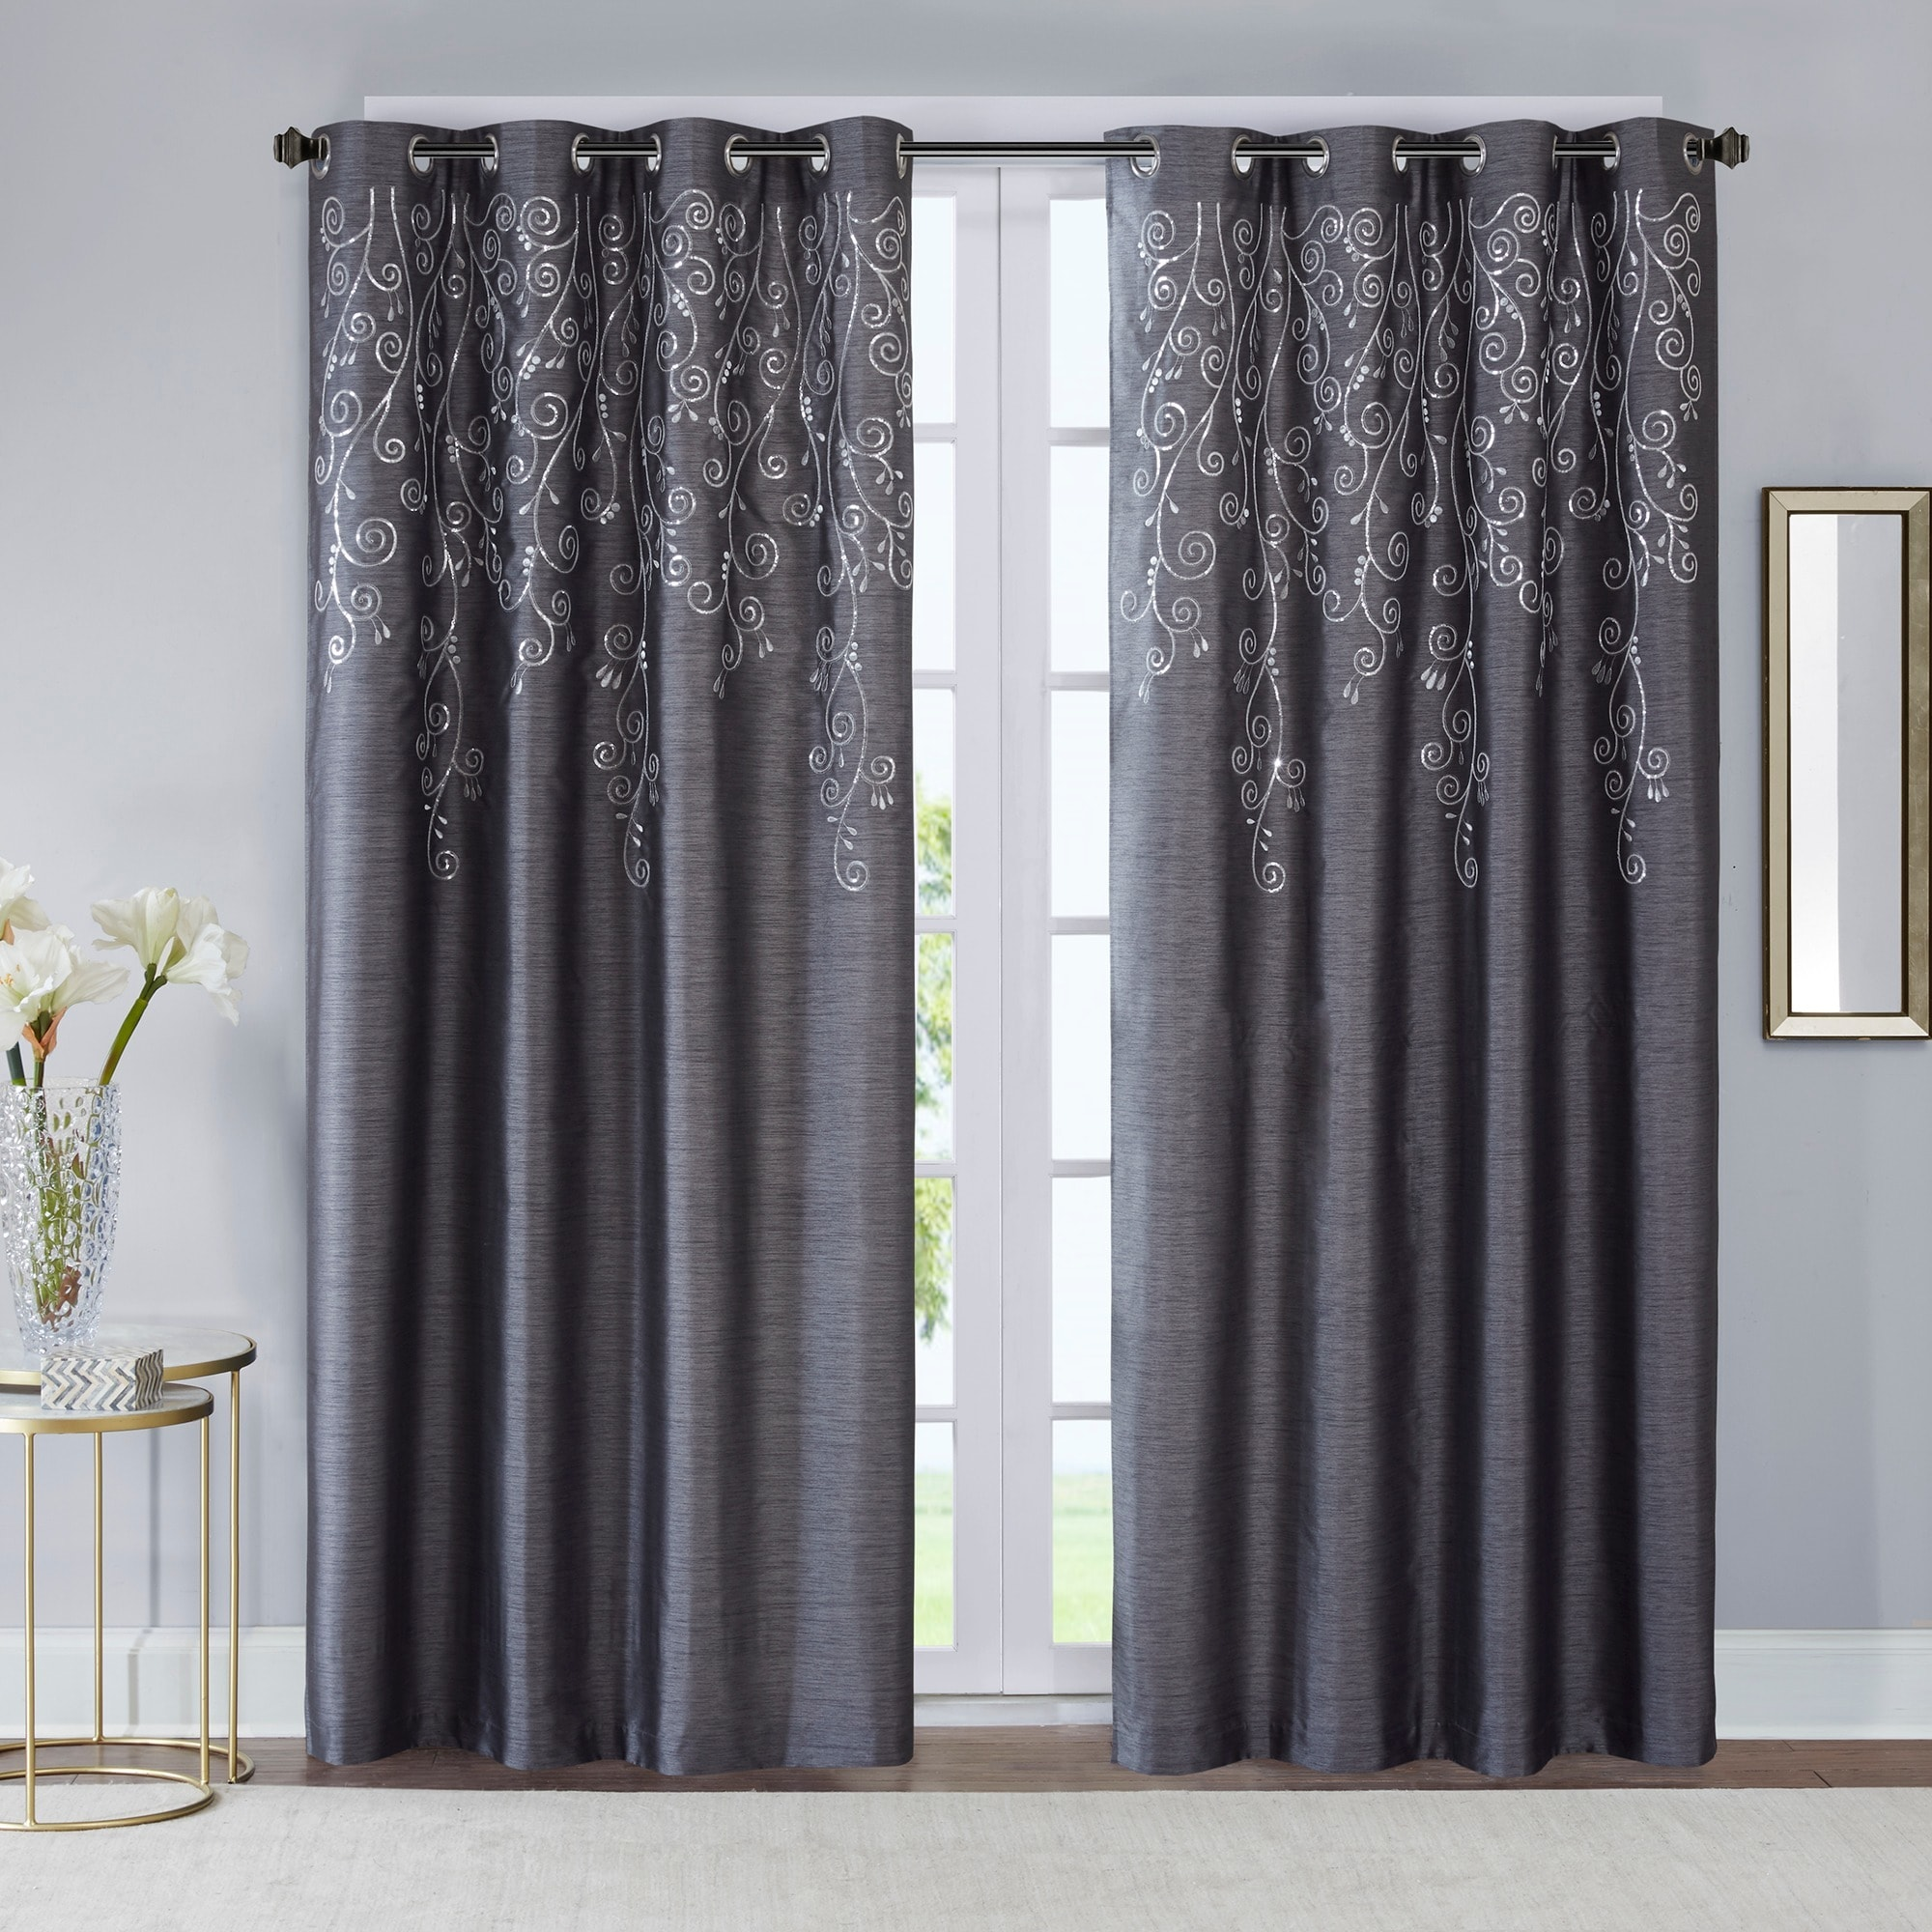 excellent ideas design single inspiration inspiring window curtains curtain